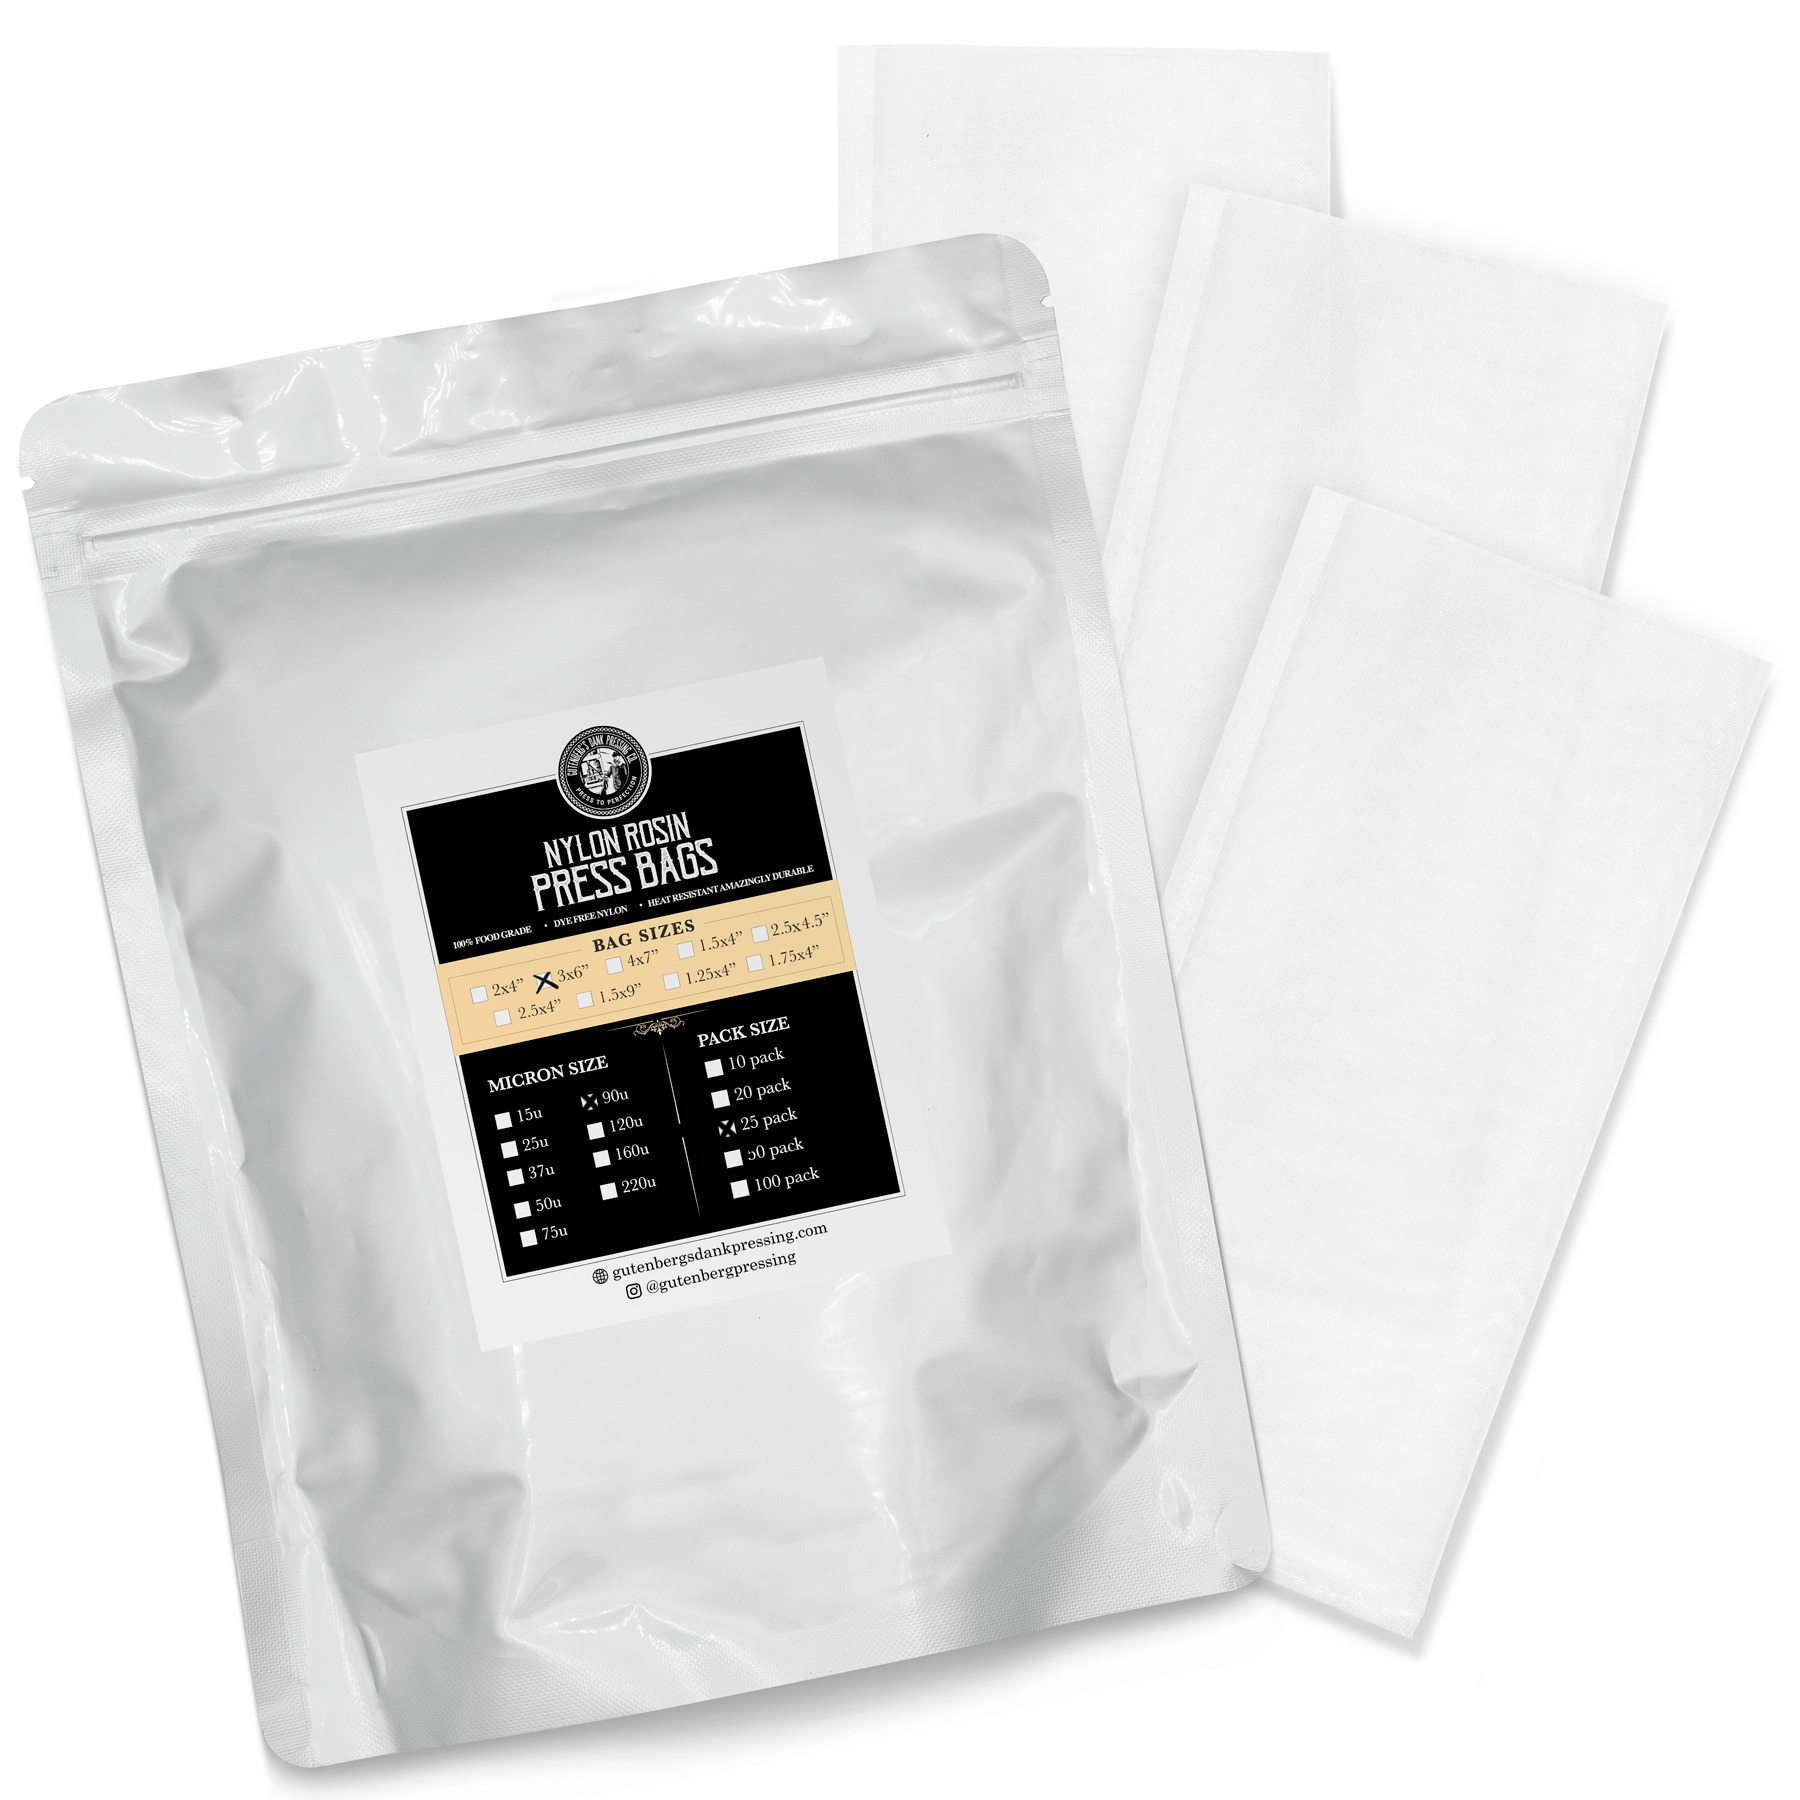 3x6 inch rosin press bags 90u 25 pack